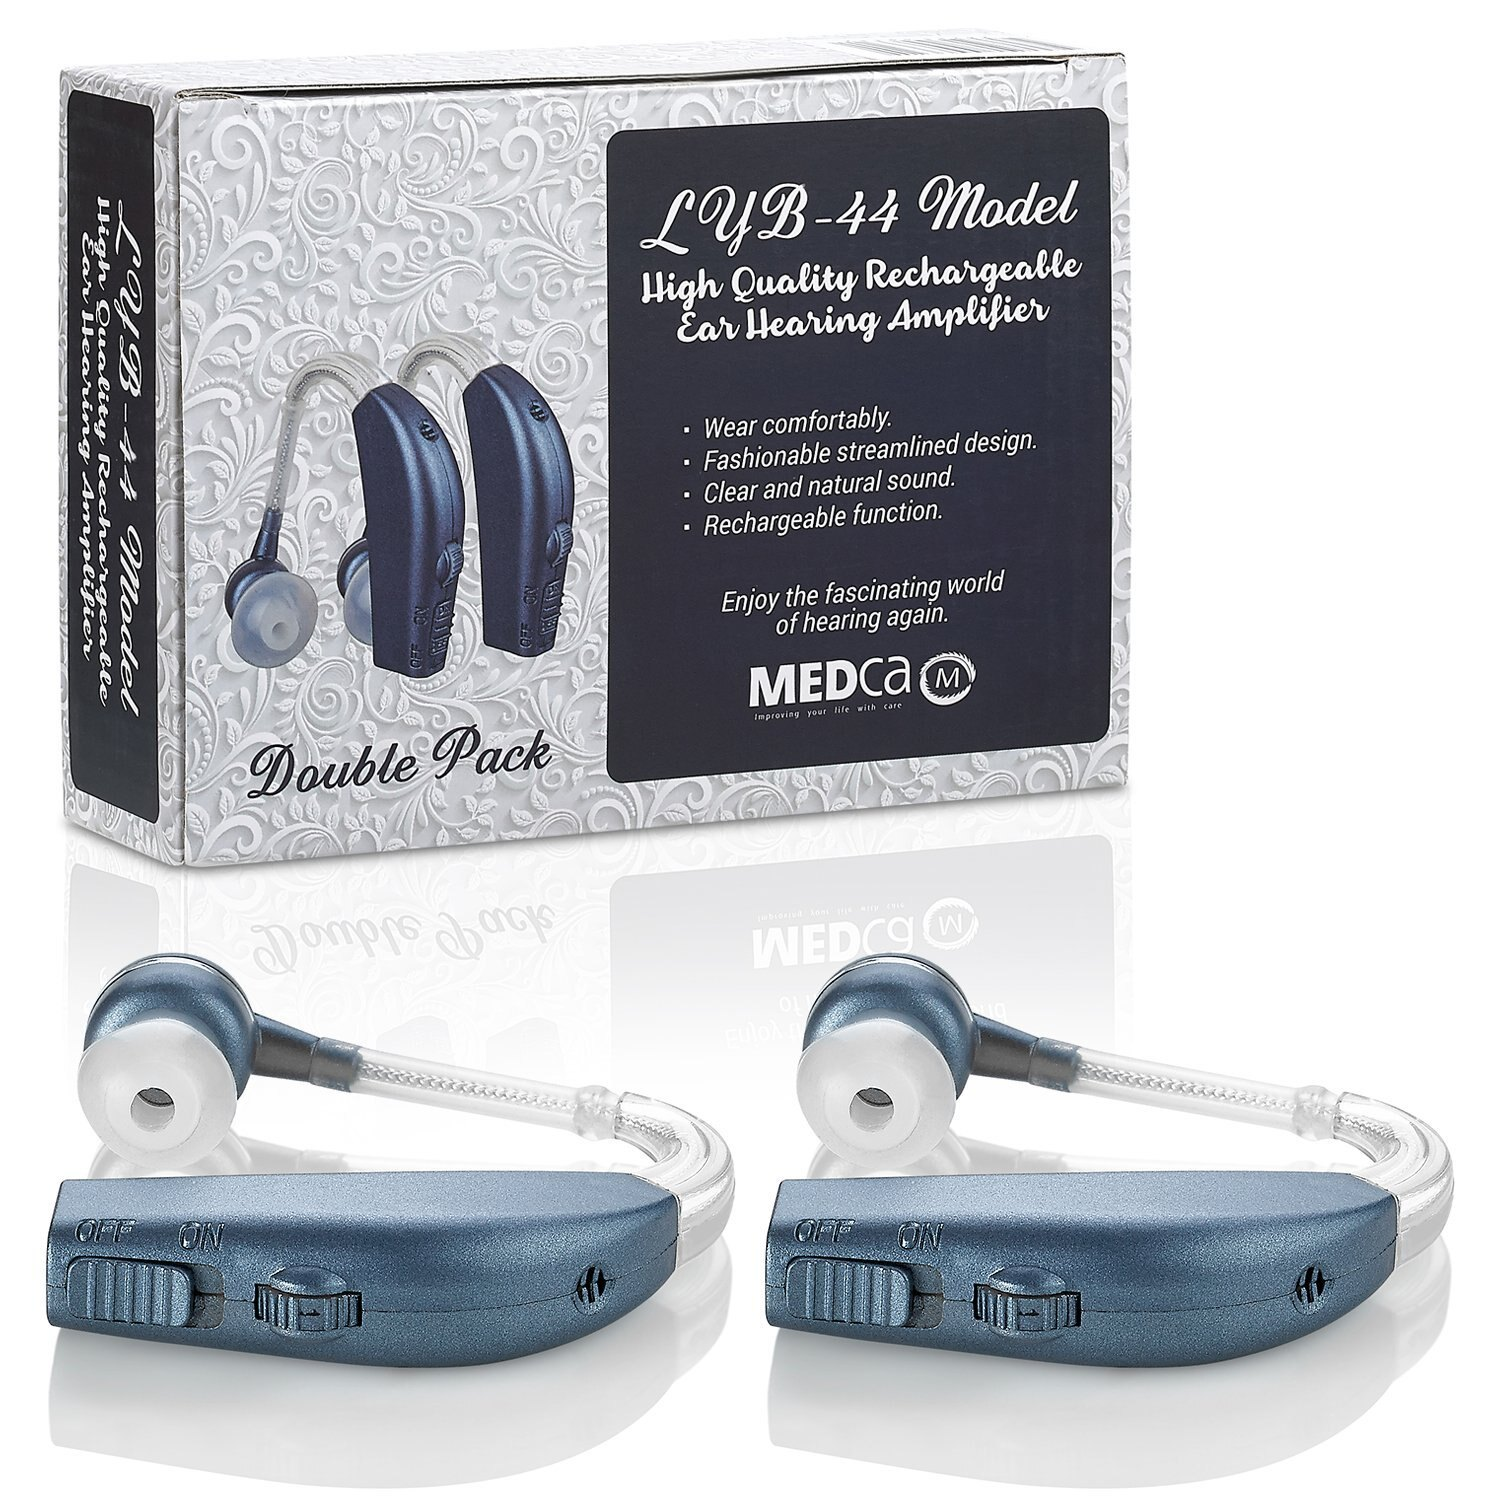 Personal Hearing Enhancement Sound Amplifier Stratadime 220 Digital Tone Adjustable Aid Behind The Ear Pair Of 2 Rechargeable